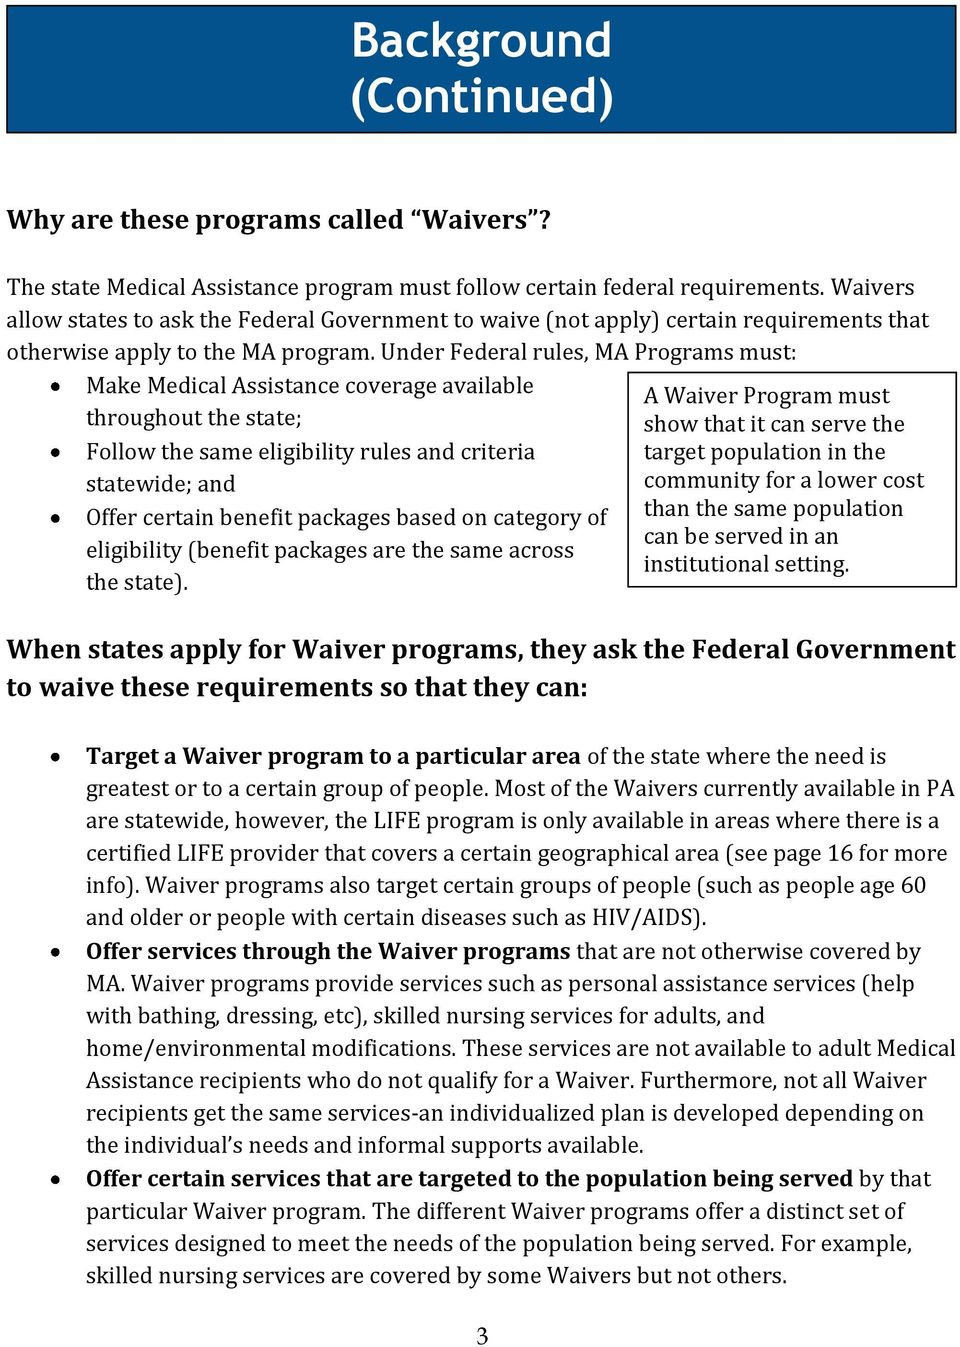 Under Federal rules, MA Programs must: Make Medical Assistance coverage available throughout the state; Follow the same eligibility rules and criteria statewide; and Offer certain benefit packages